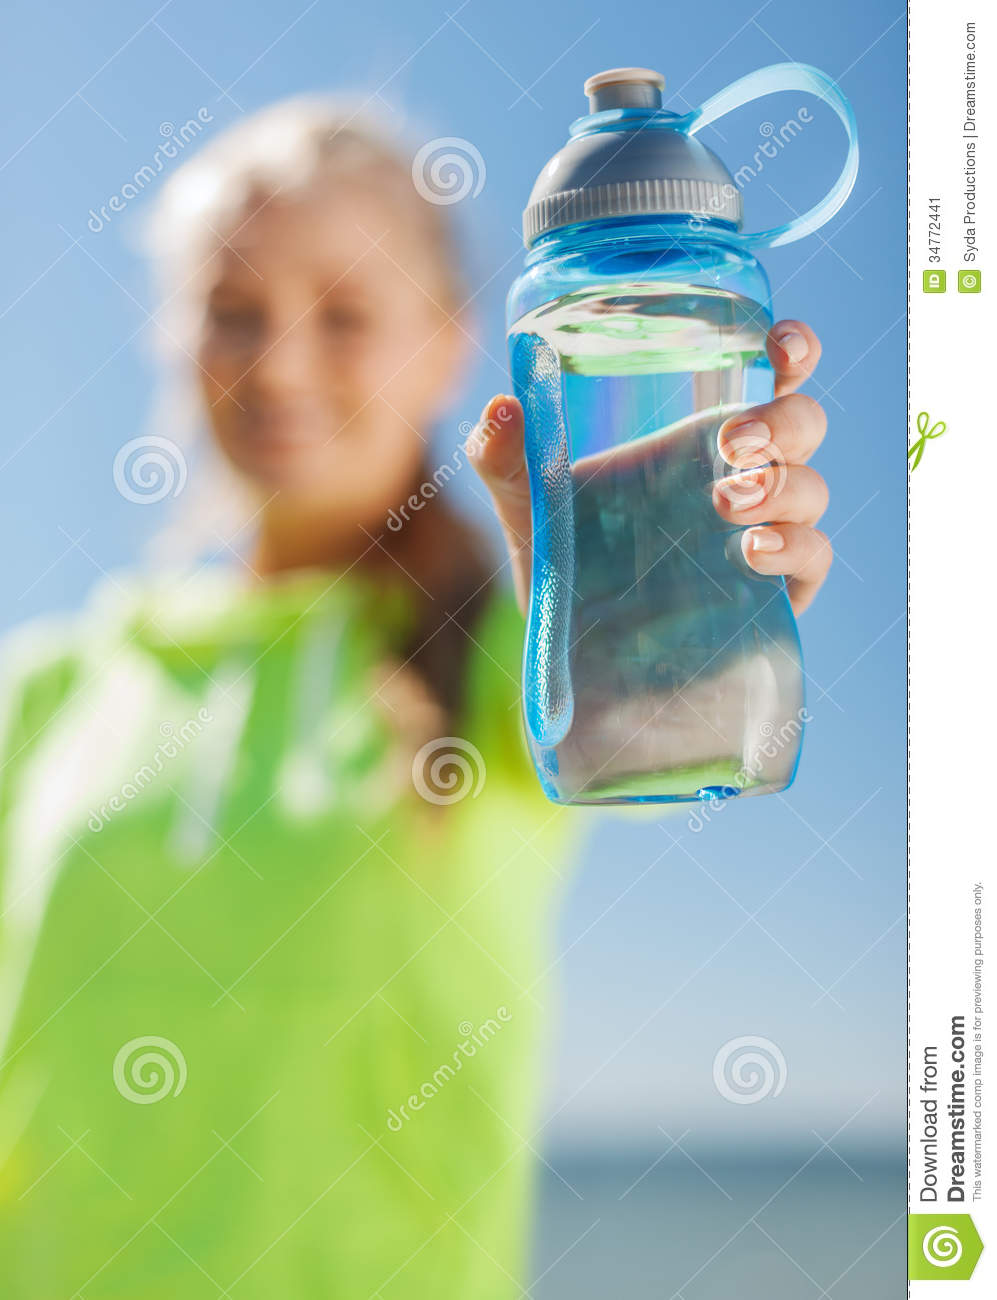 Lifestyle concept woman showing a bottle of water after doing sports